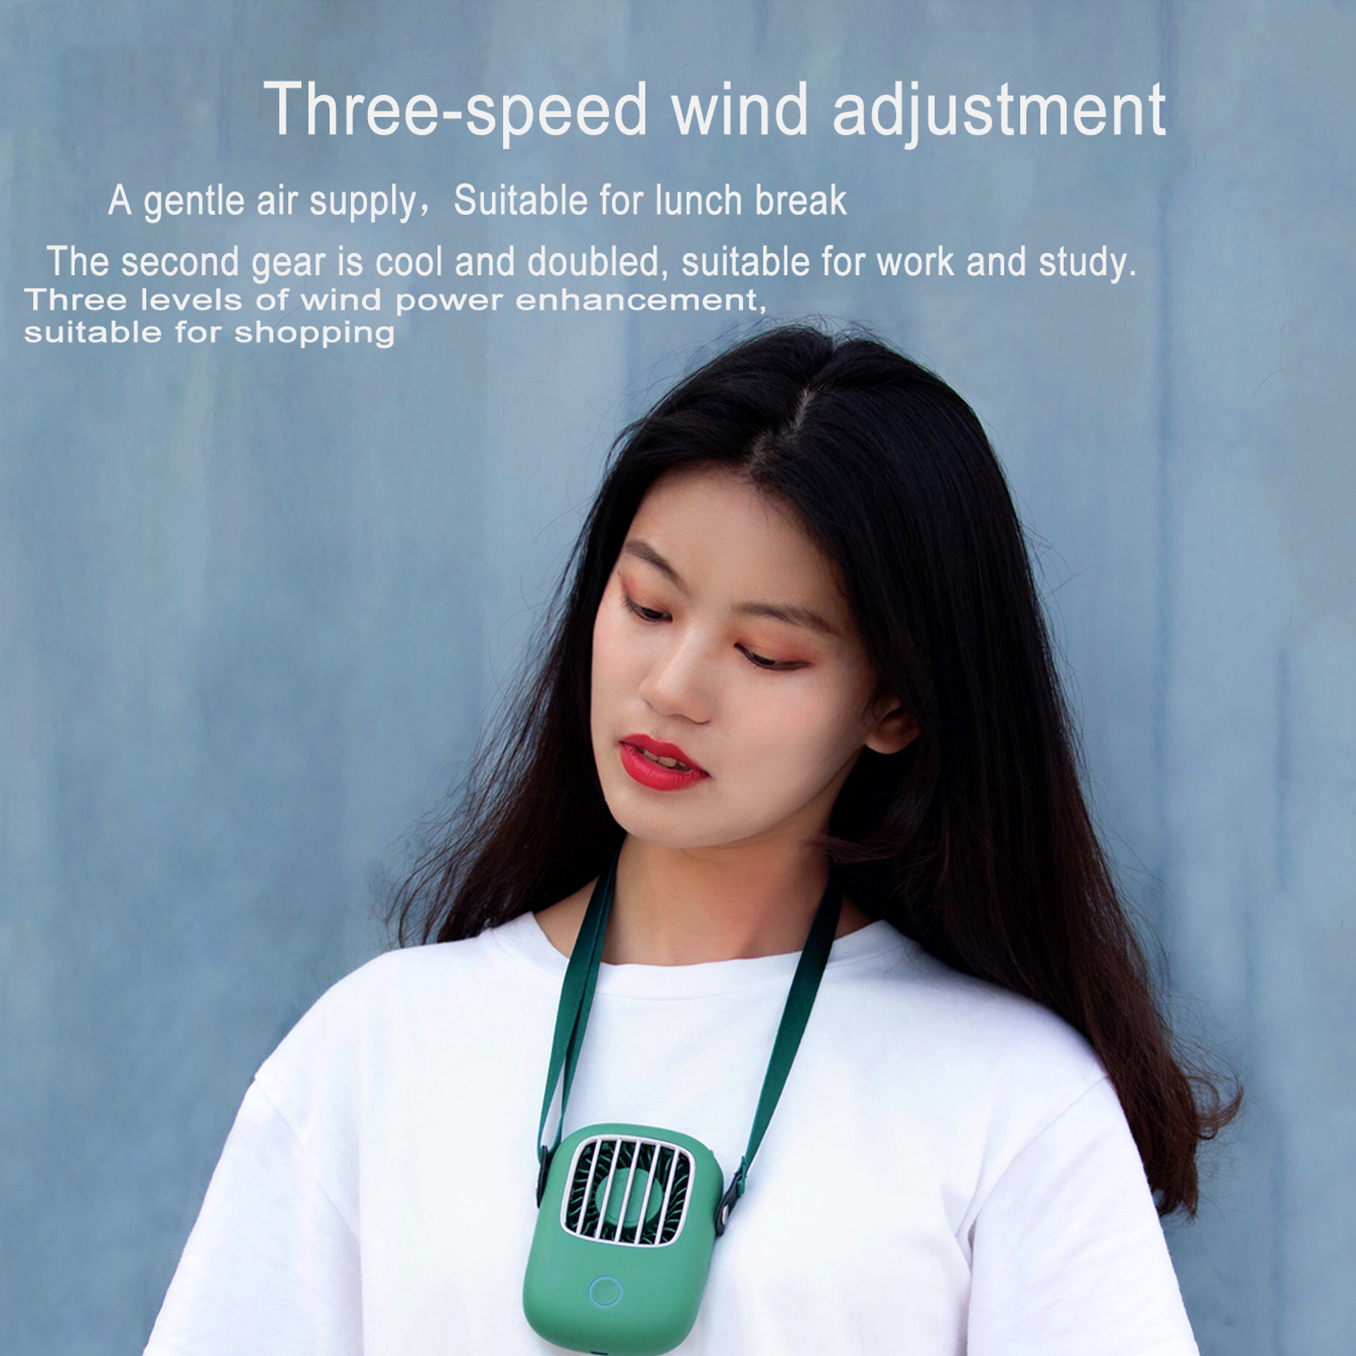 CATLION Mini Usb Neck Fan 5V Cooler Rechargeable Ventilador Outdoor Travel Handheld Portable Silent Small Fans Office